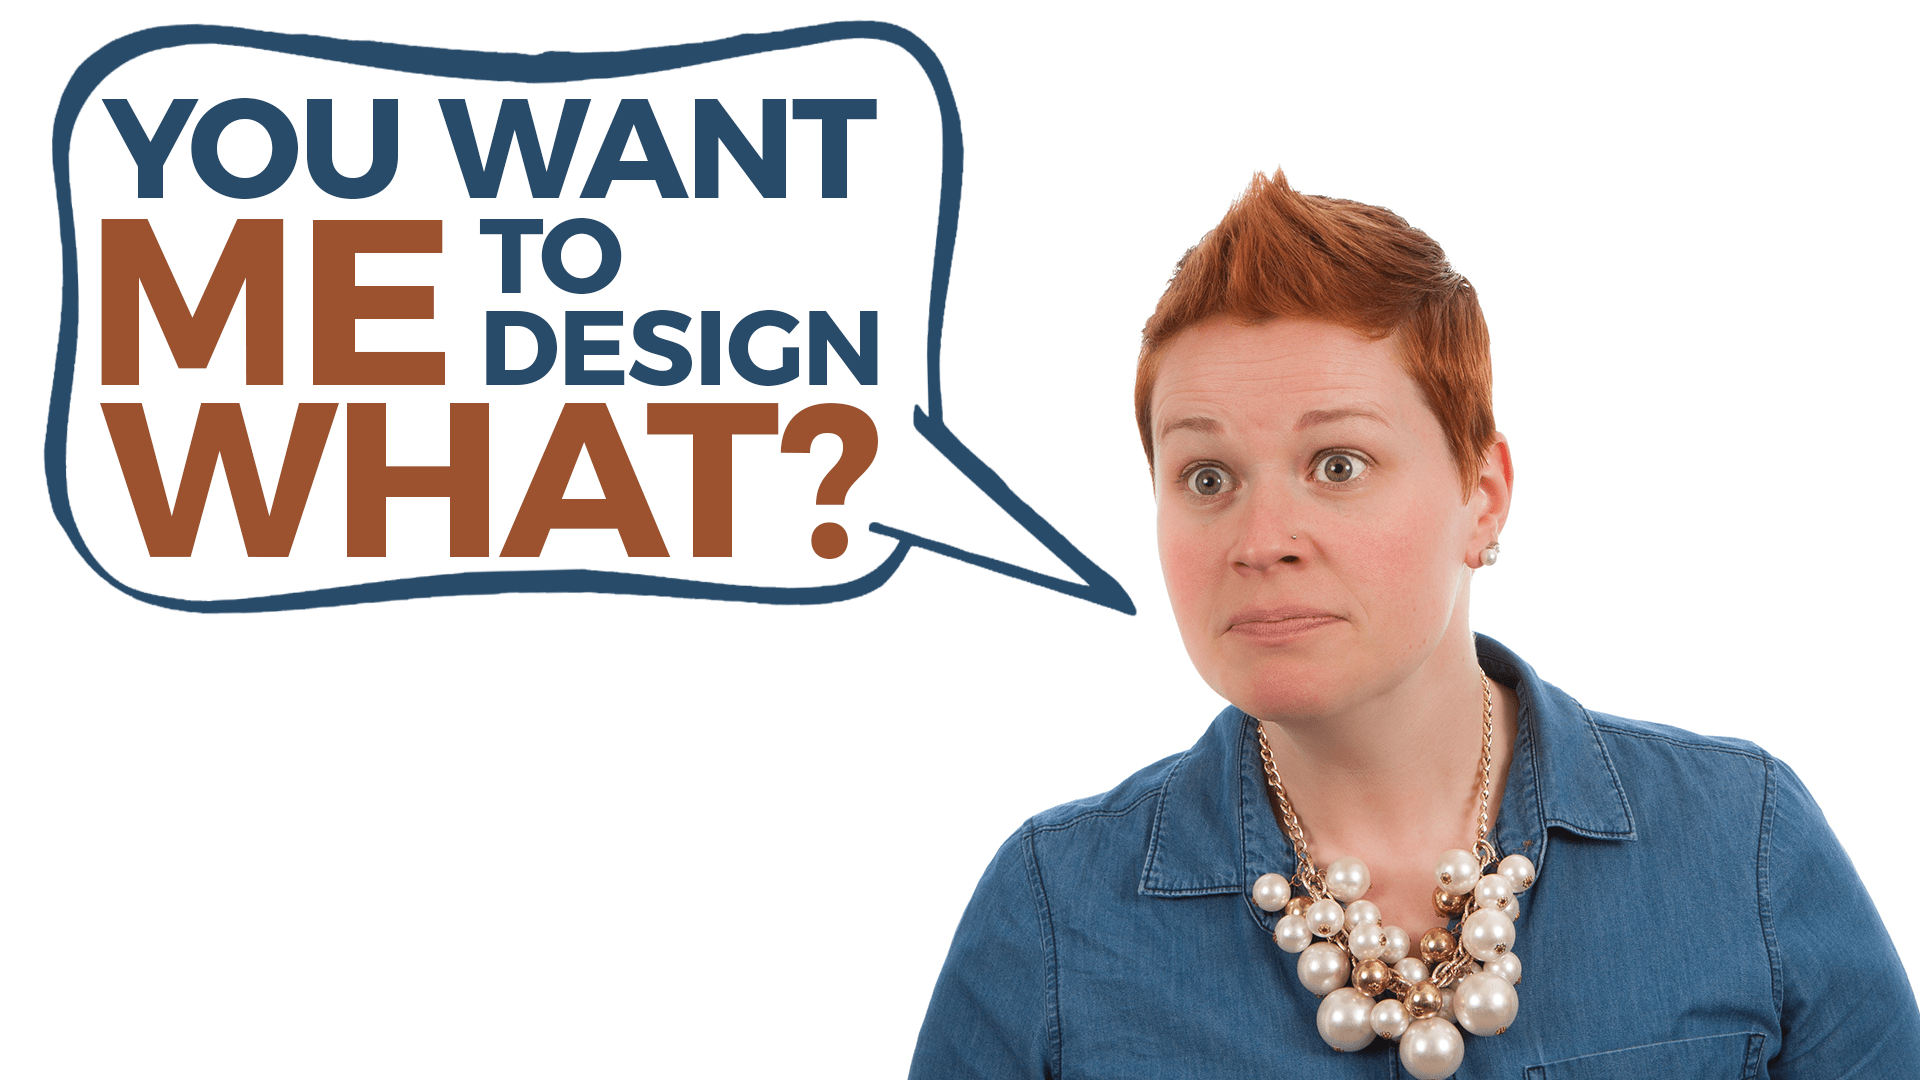 You Want Me to Design What?